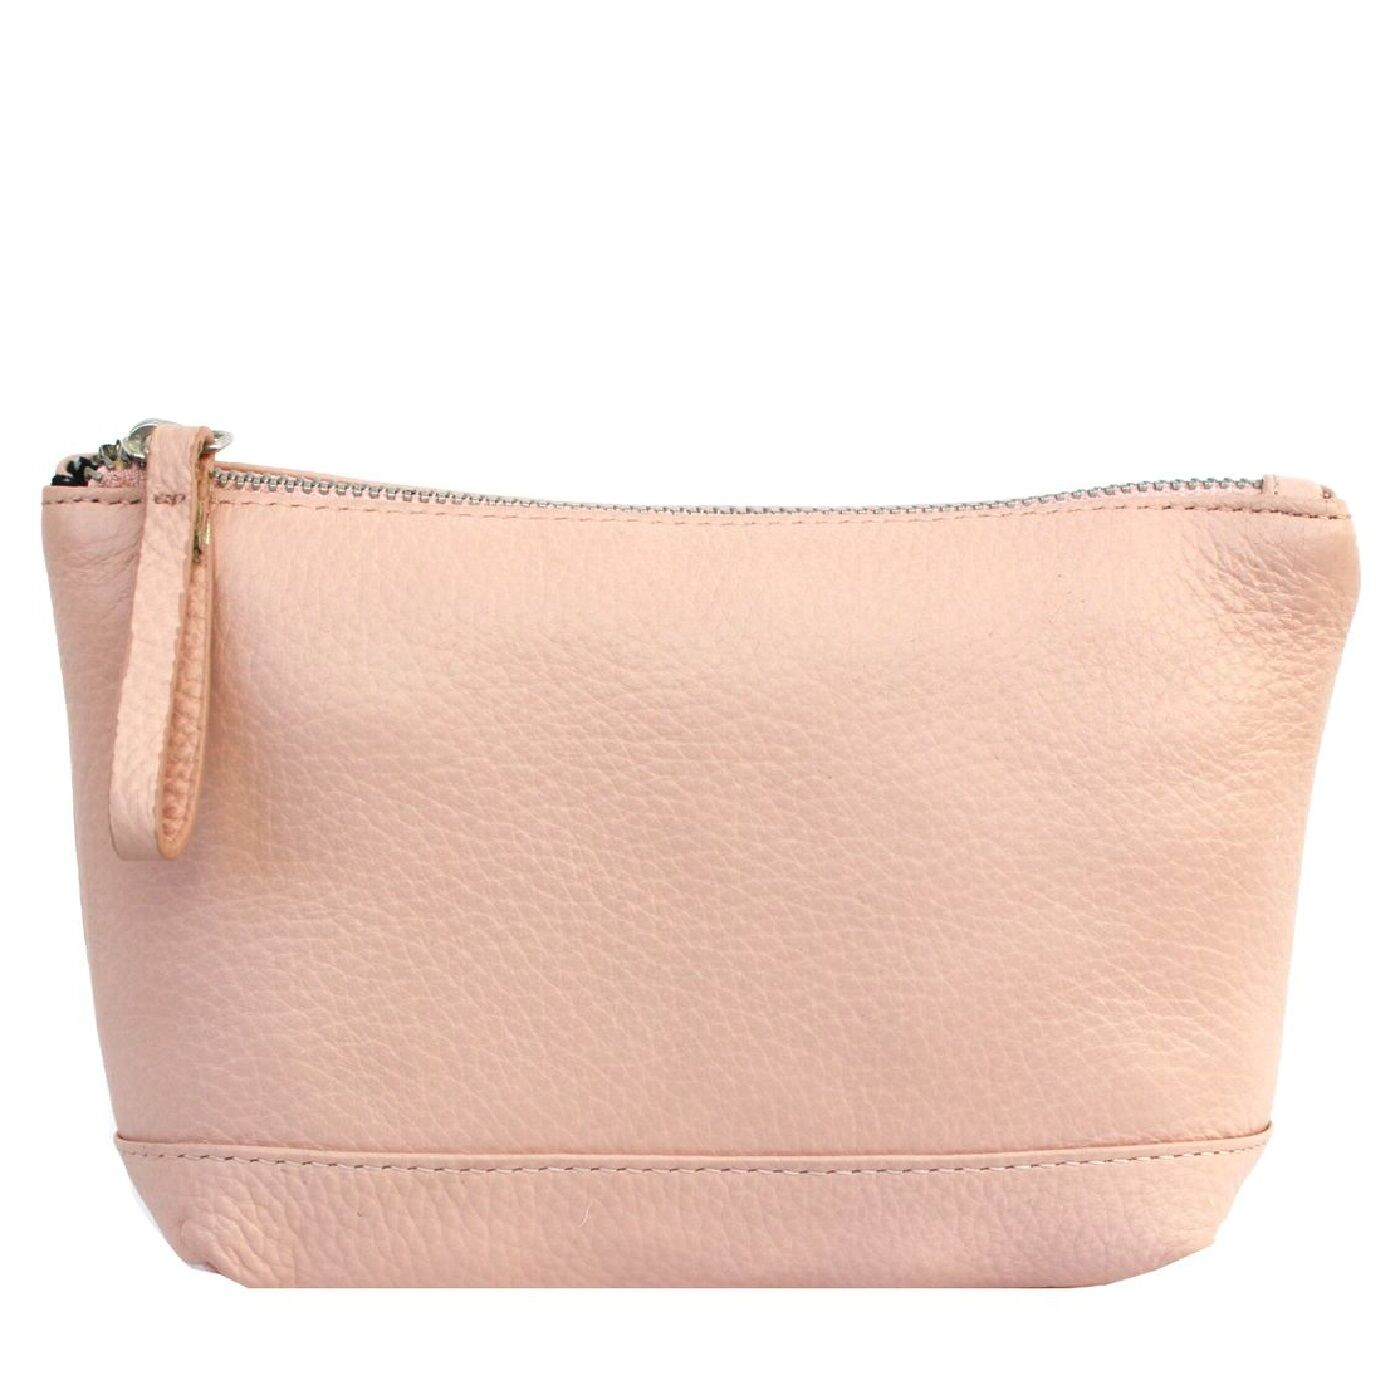 Eastern Counties Leather - Trousse À Maquillage Cora - Femme (Rose clair) (Taille unique) - UTEL131